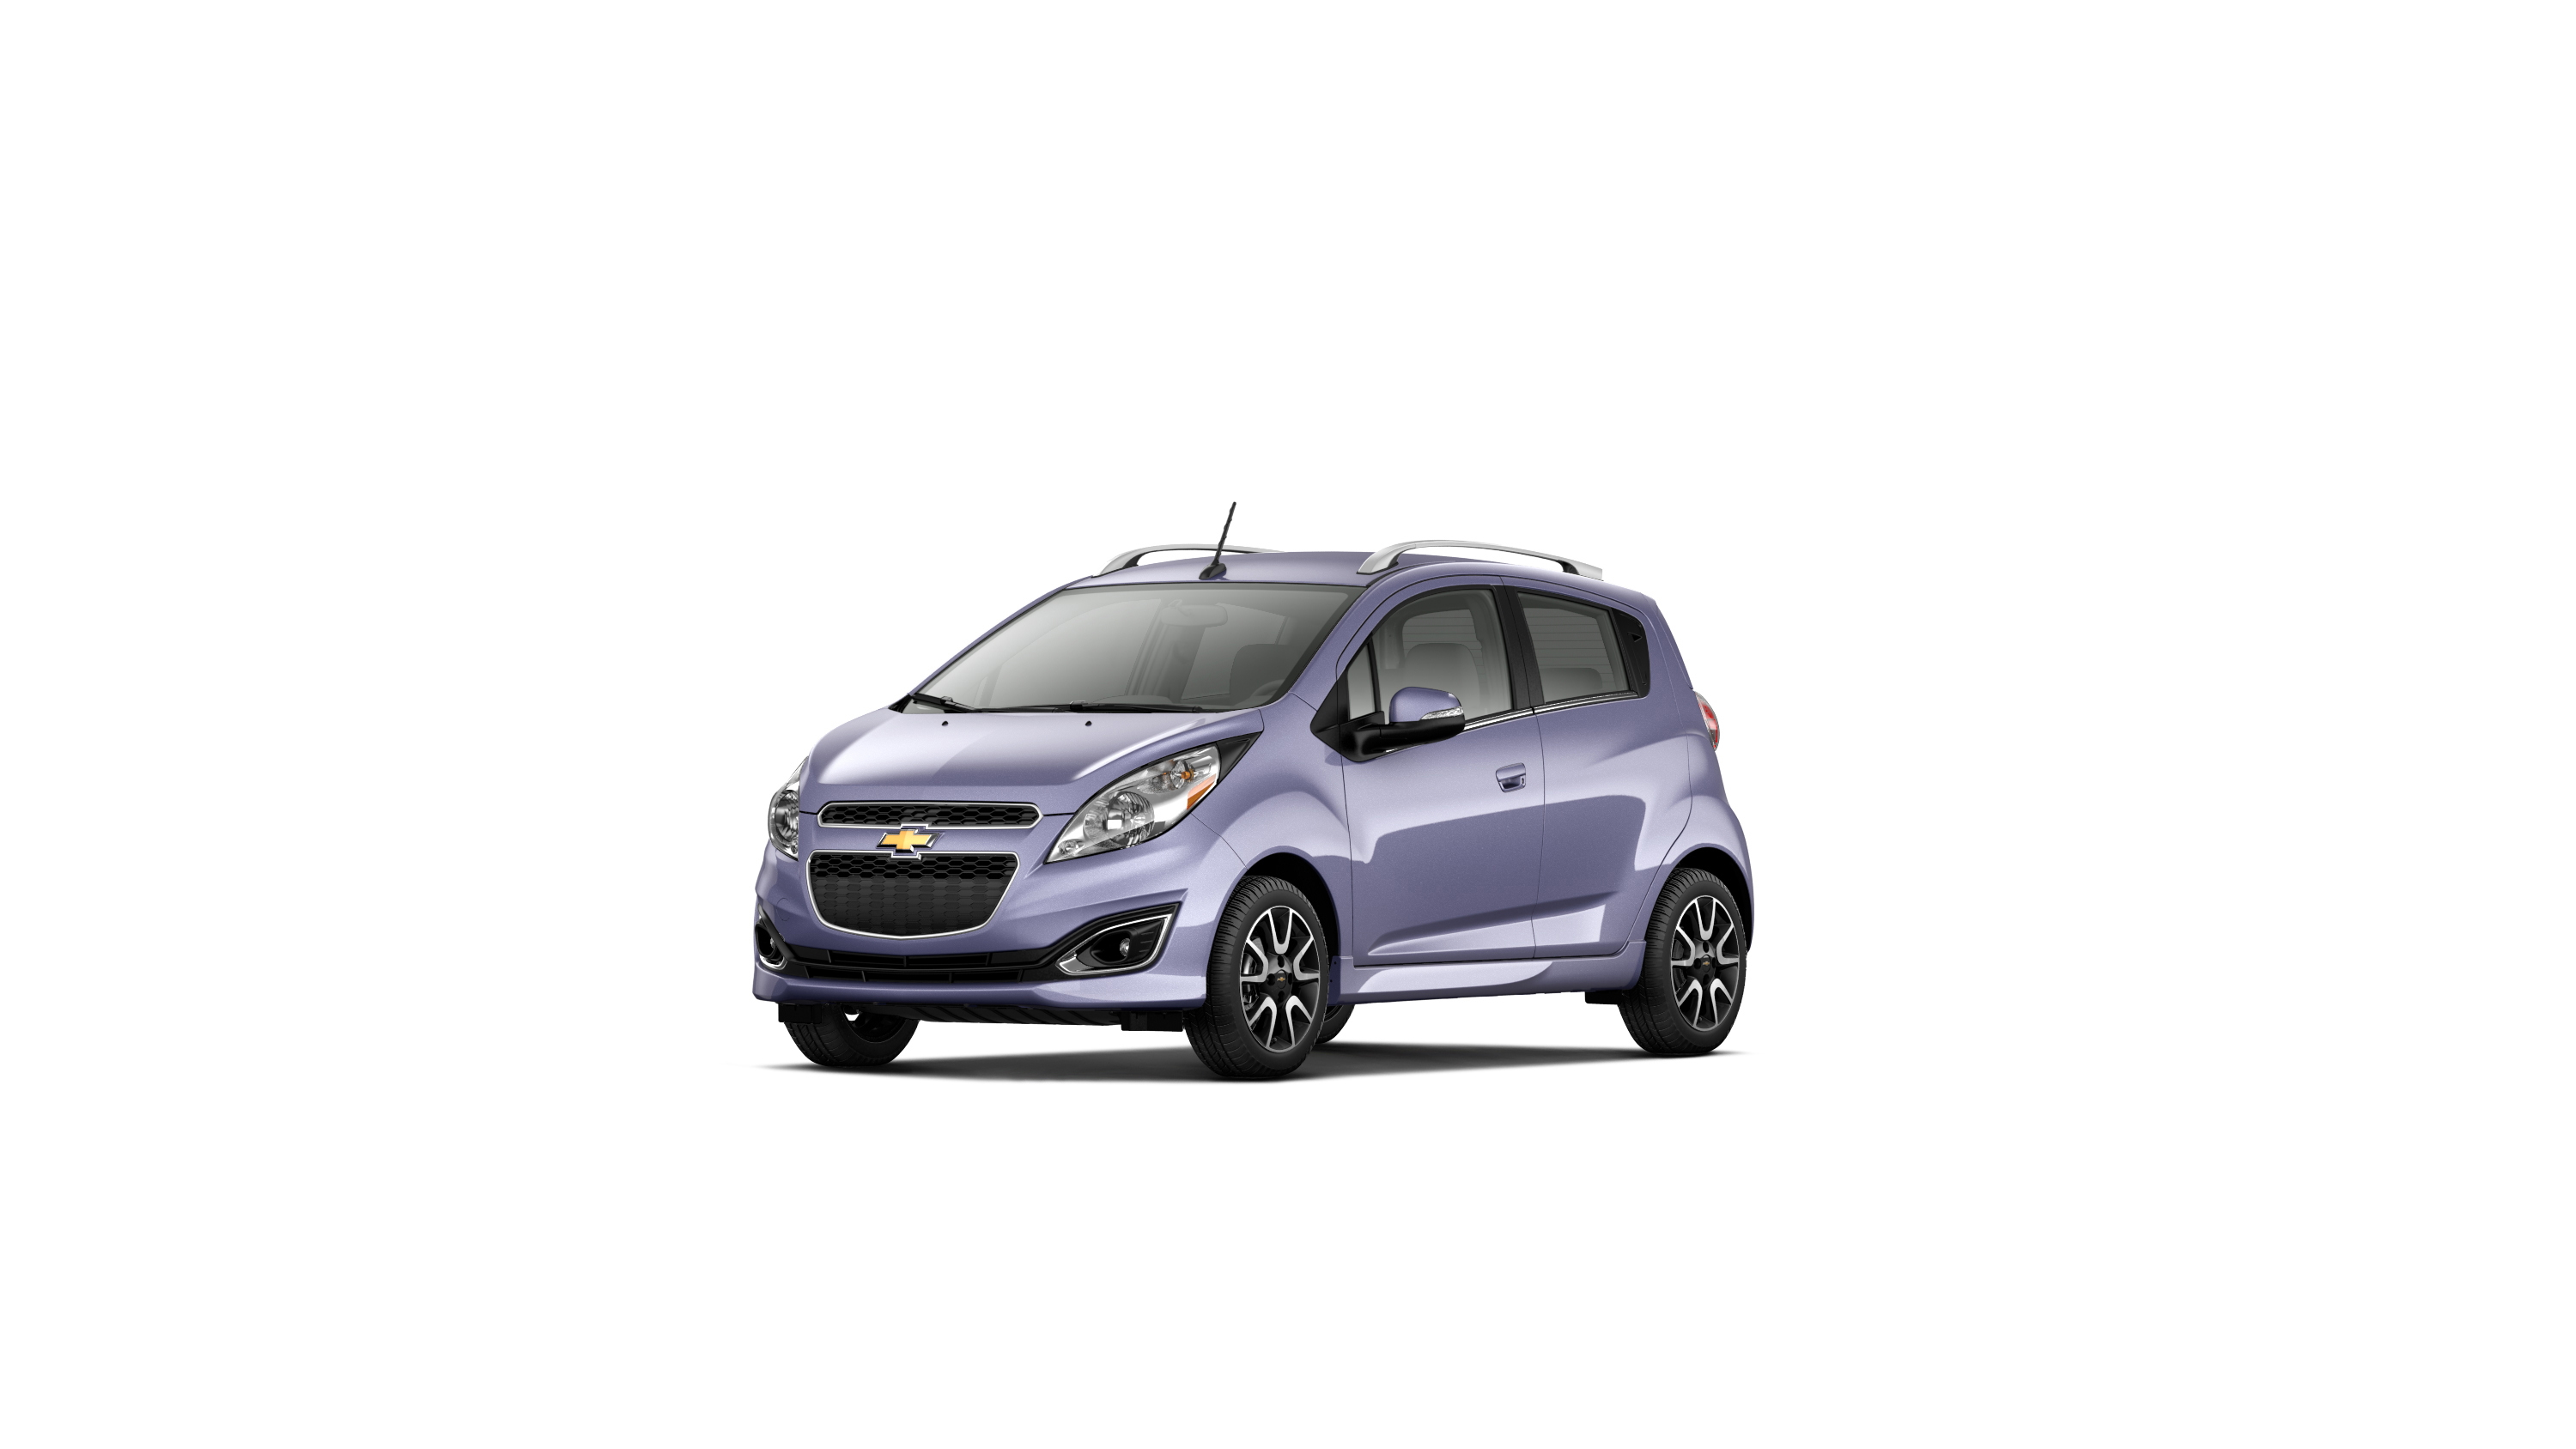 intl variation chevrolet overview all aa international price spark